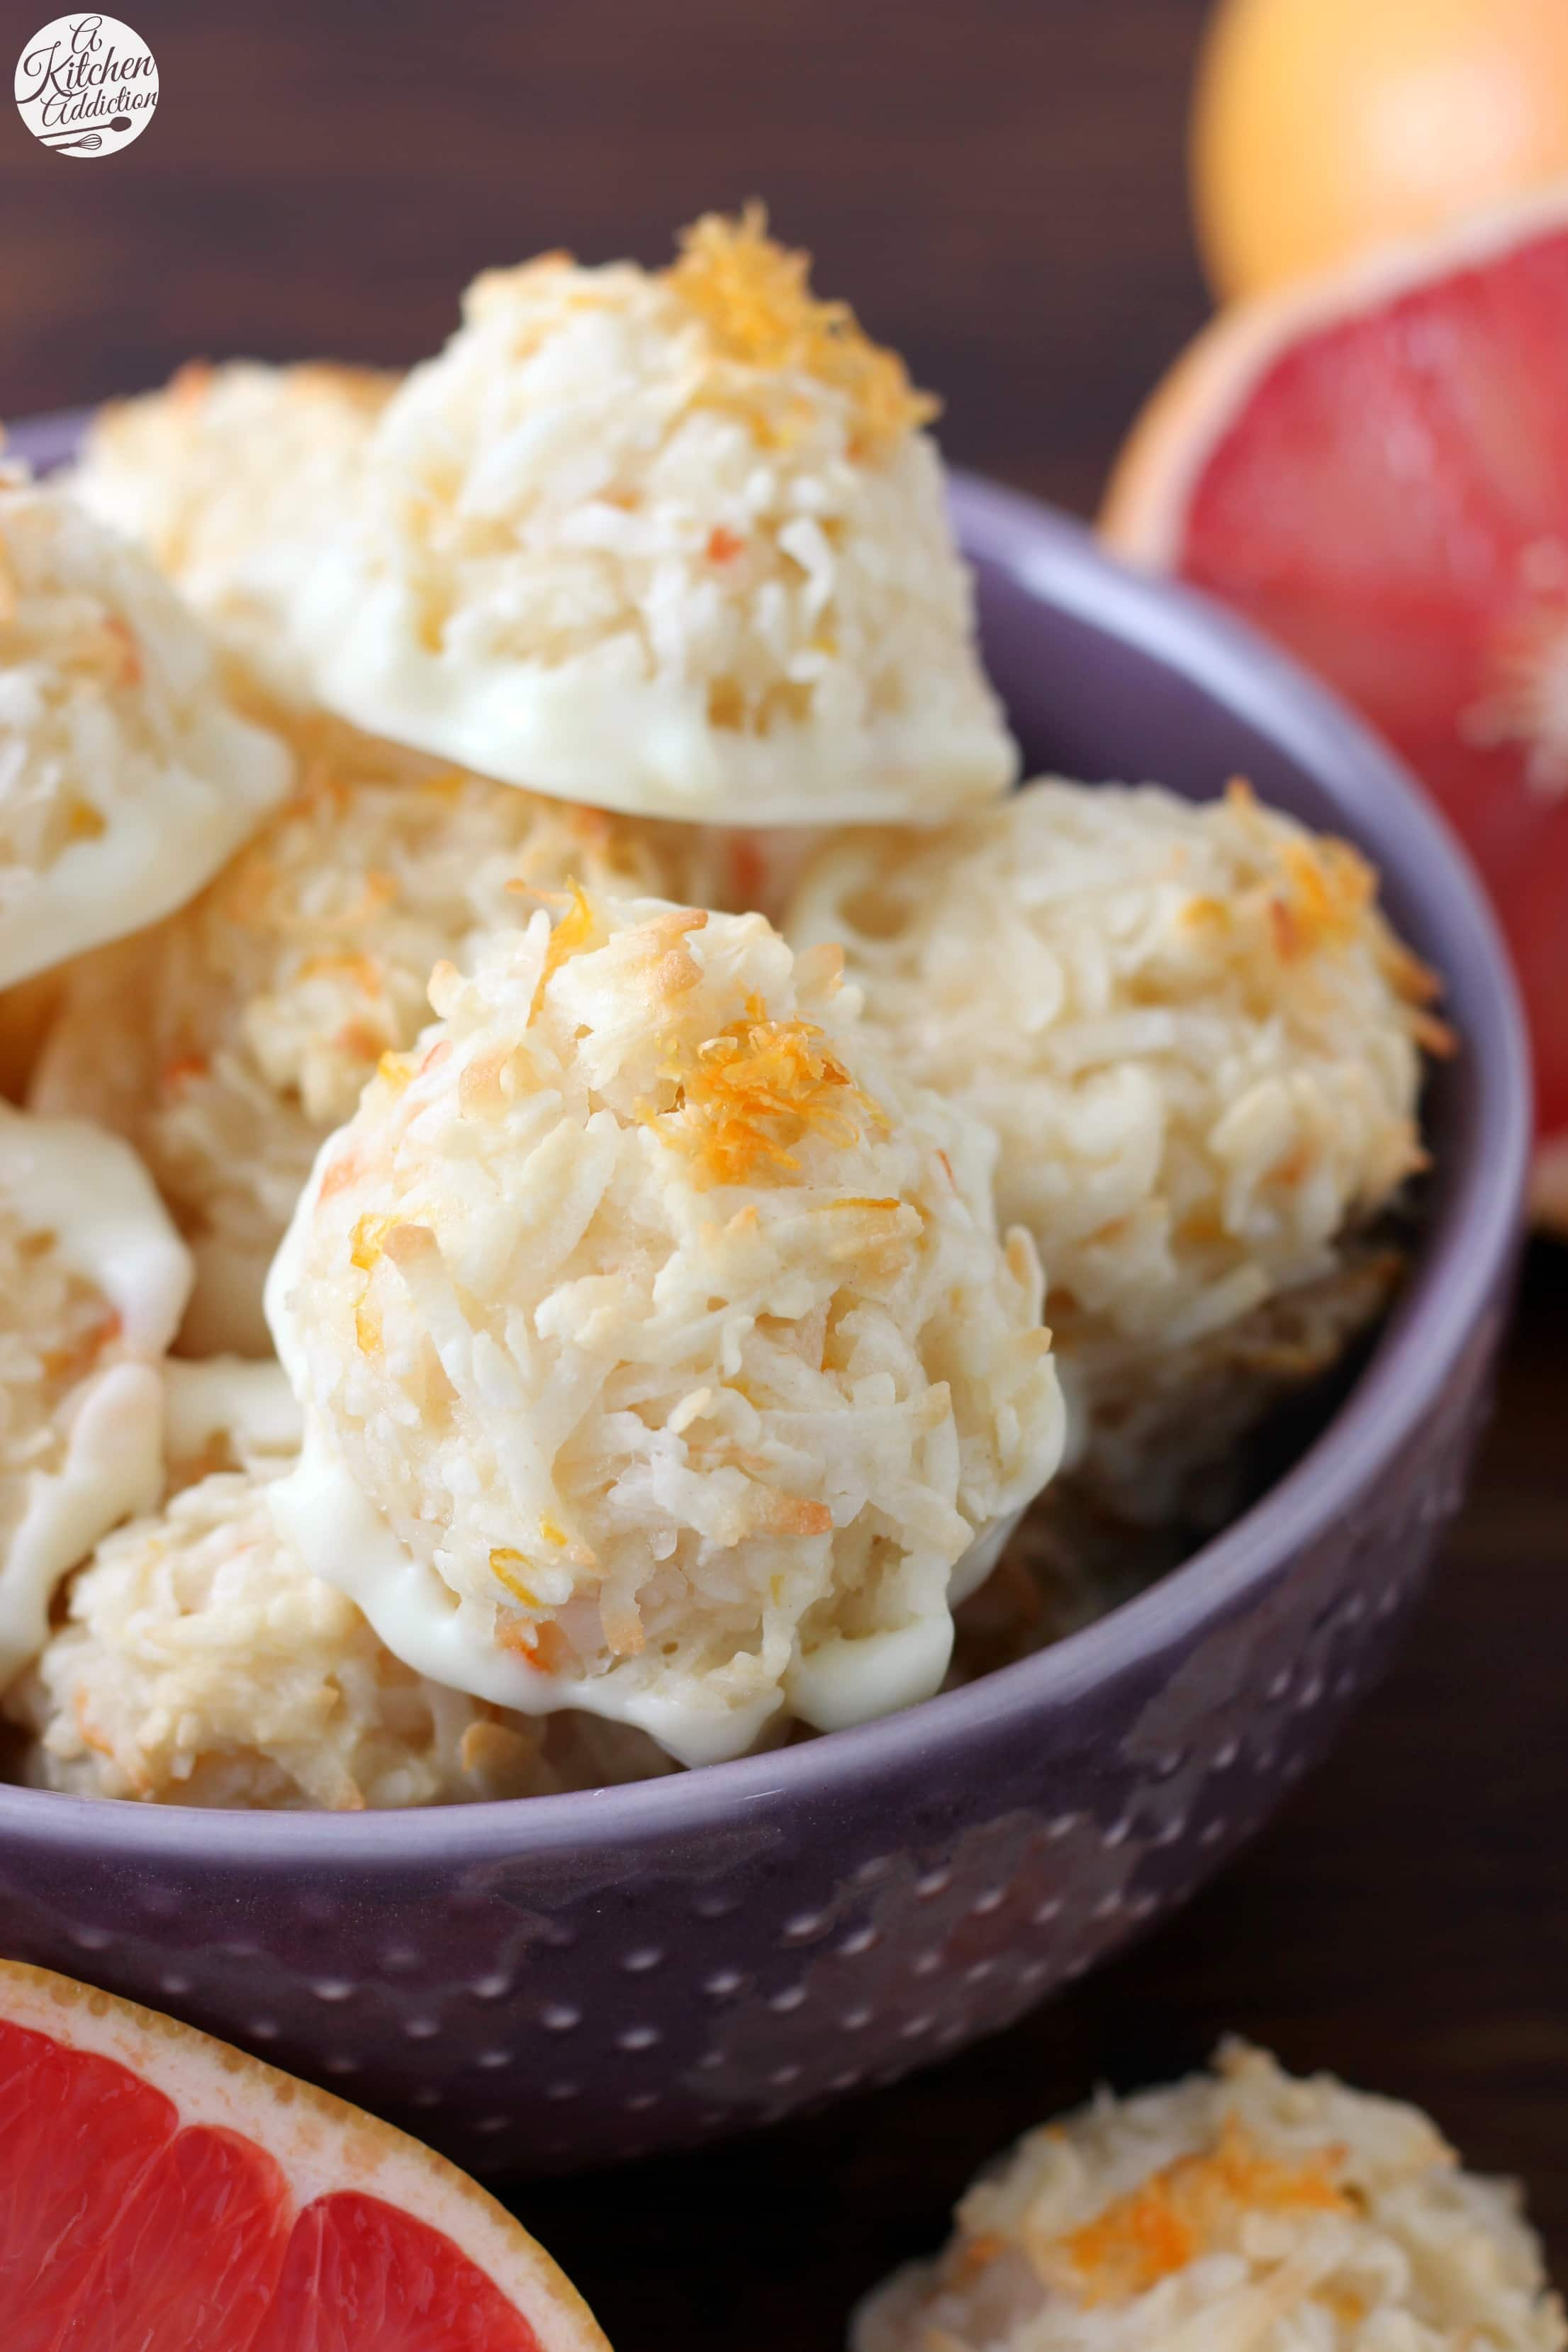 Coconut Grapefruit Macaroons dipped in White Chocolate